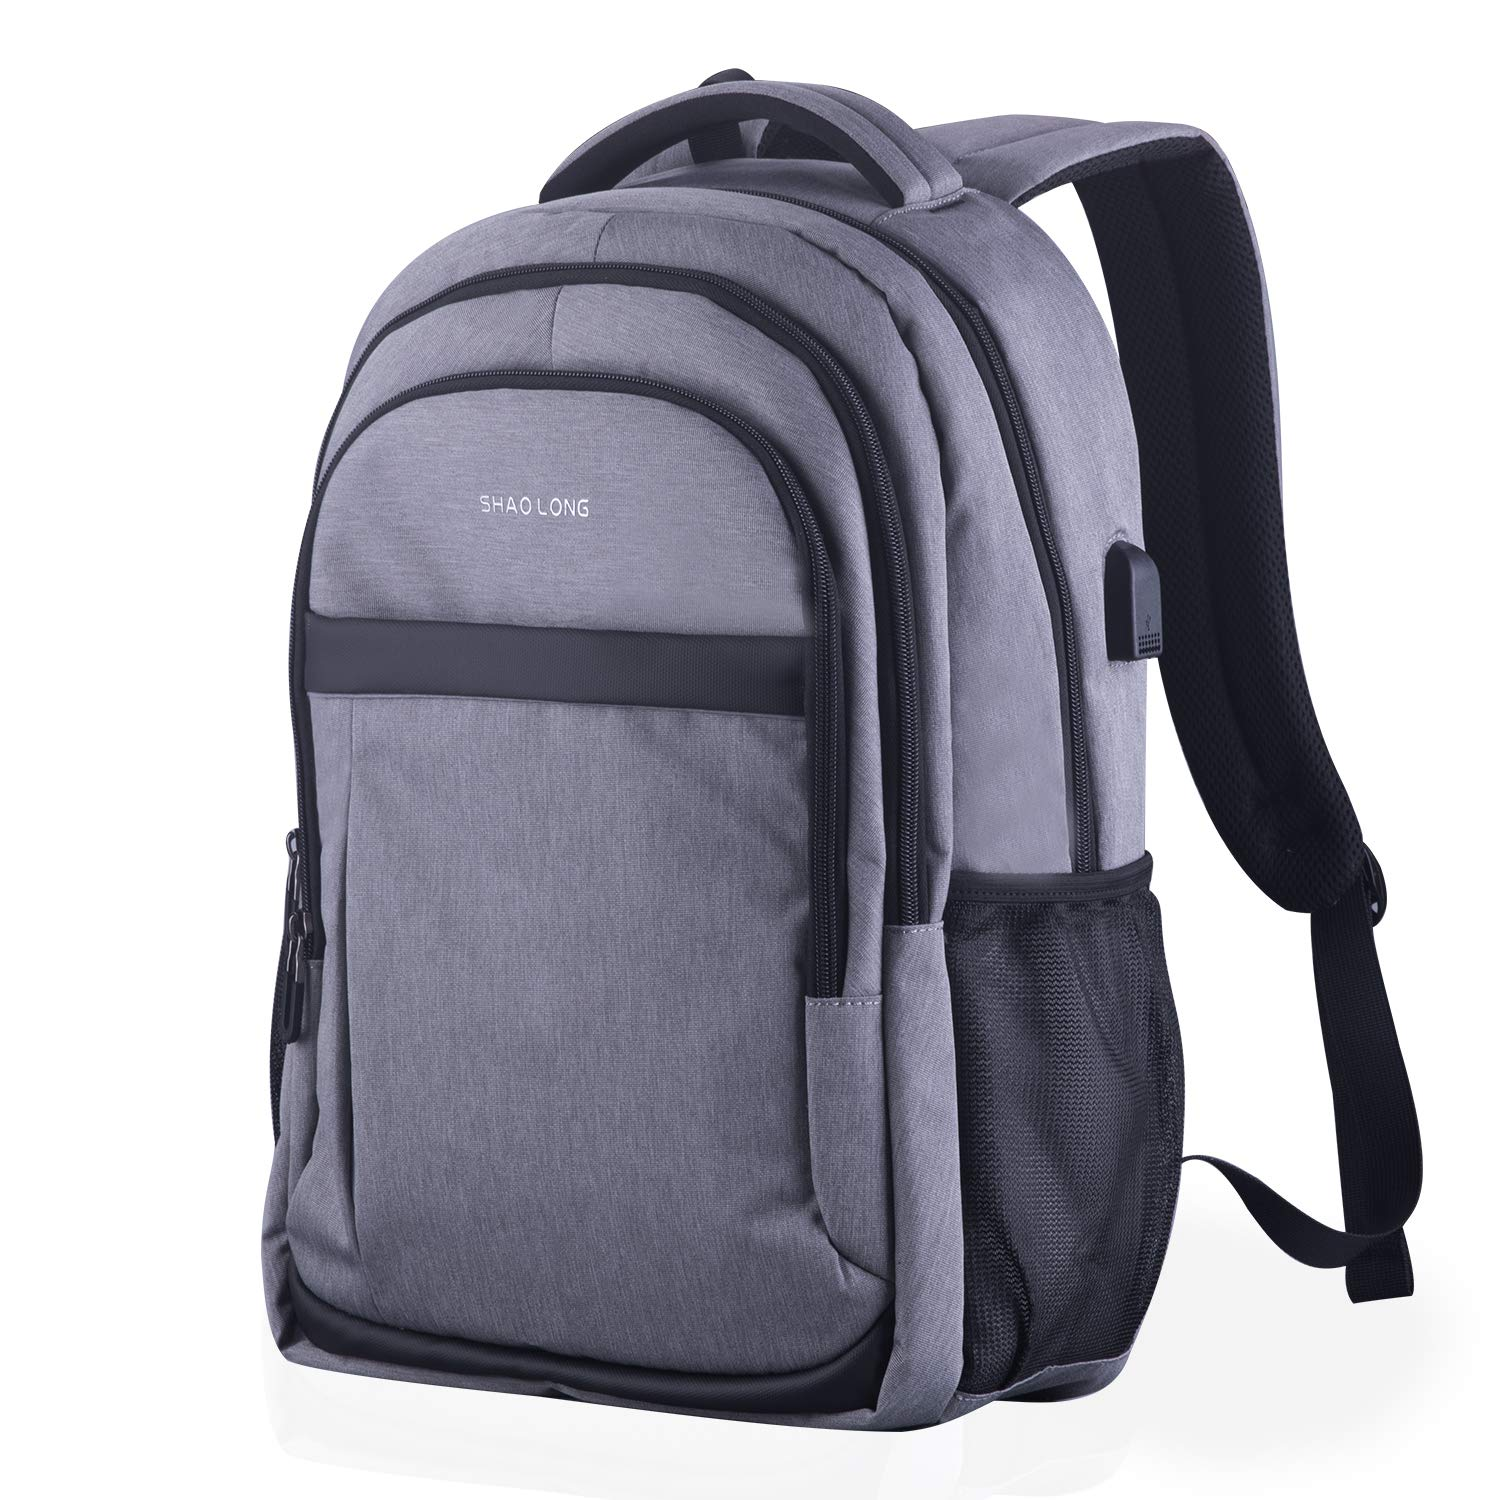 Travel Laptop Backpack, Gebnuit Anti-Theft Business Student Laptop Backpack with USB Charging Port, Slim Durable Water Resistant College School Computer Bag for Women & Men Fits 15.6 Inch Laptop-Grey